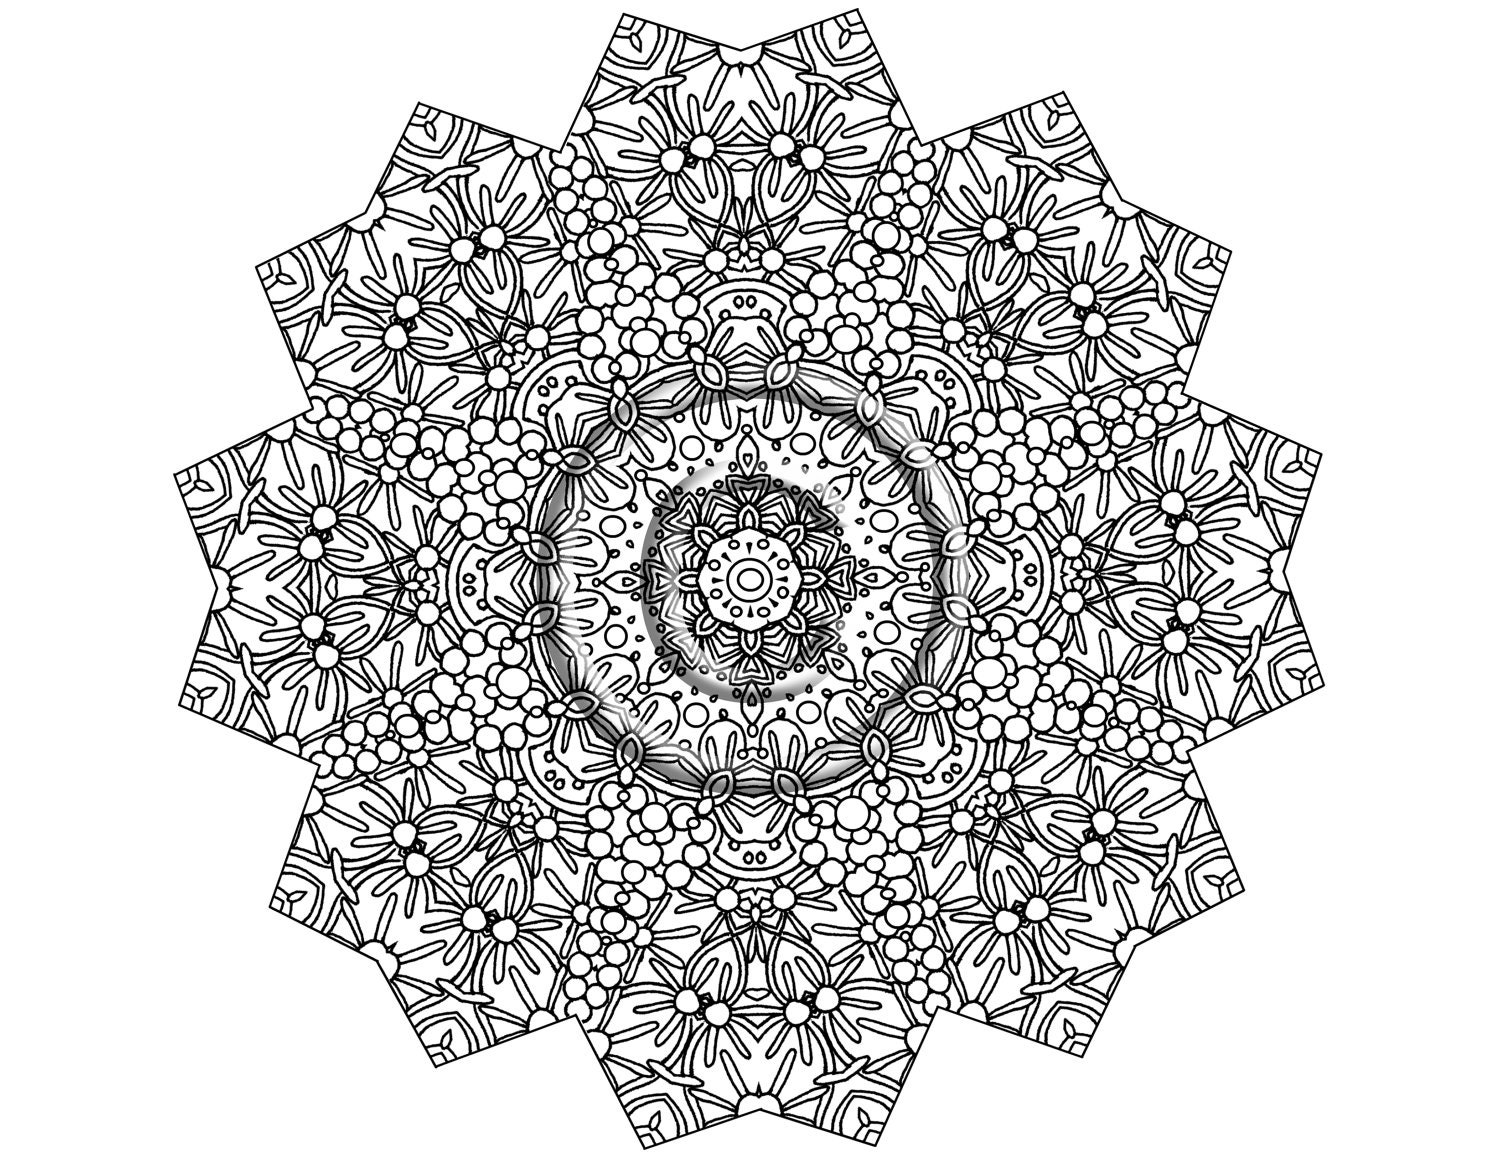 intricate mandala coloring pages - photo#9